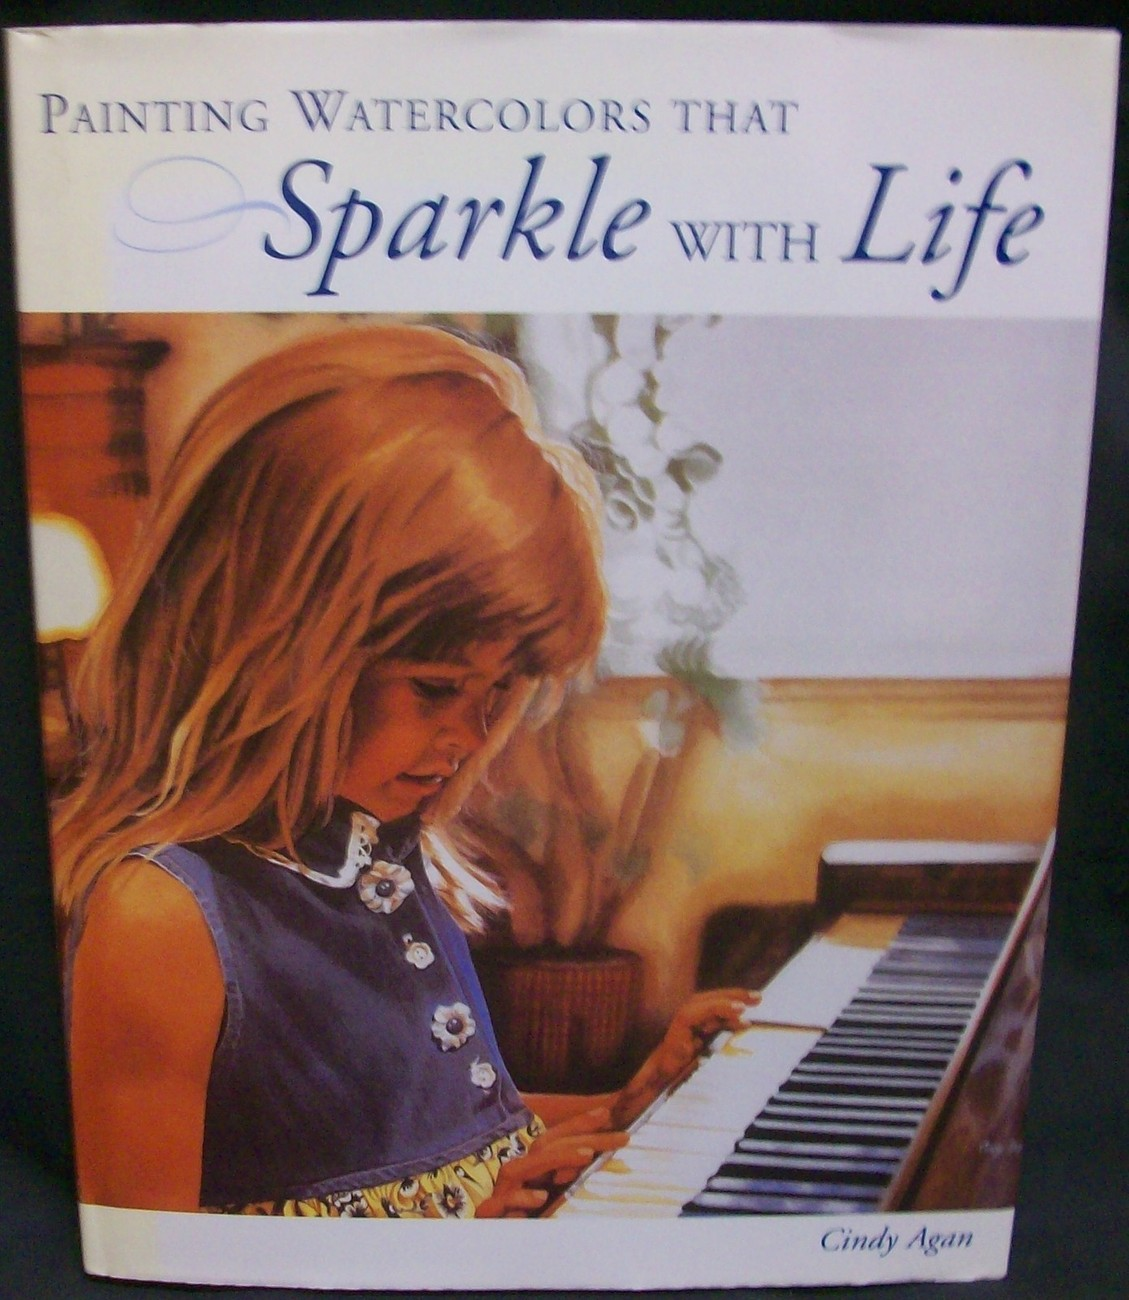 Painting Watercolors that Sparkle with Life